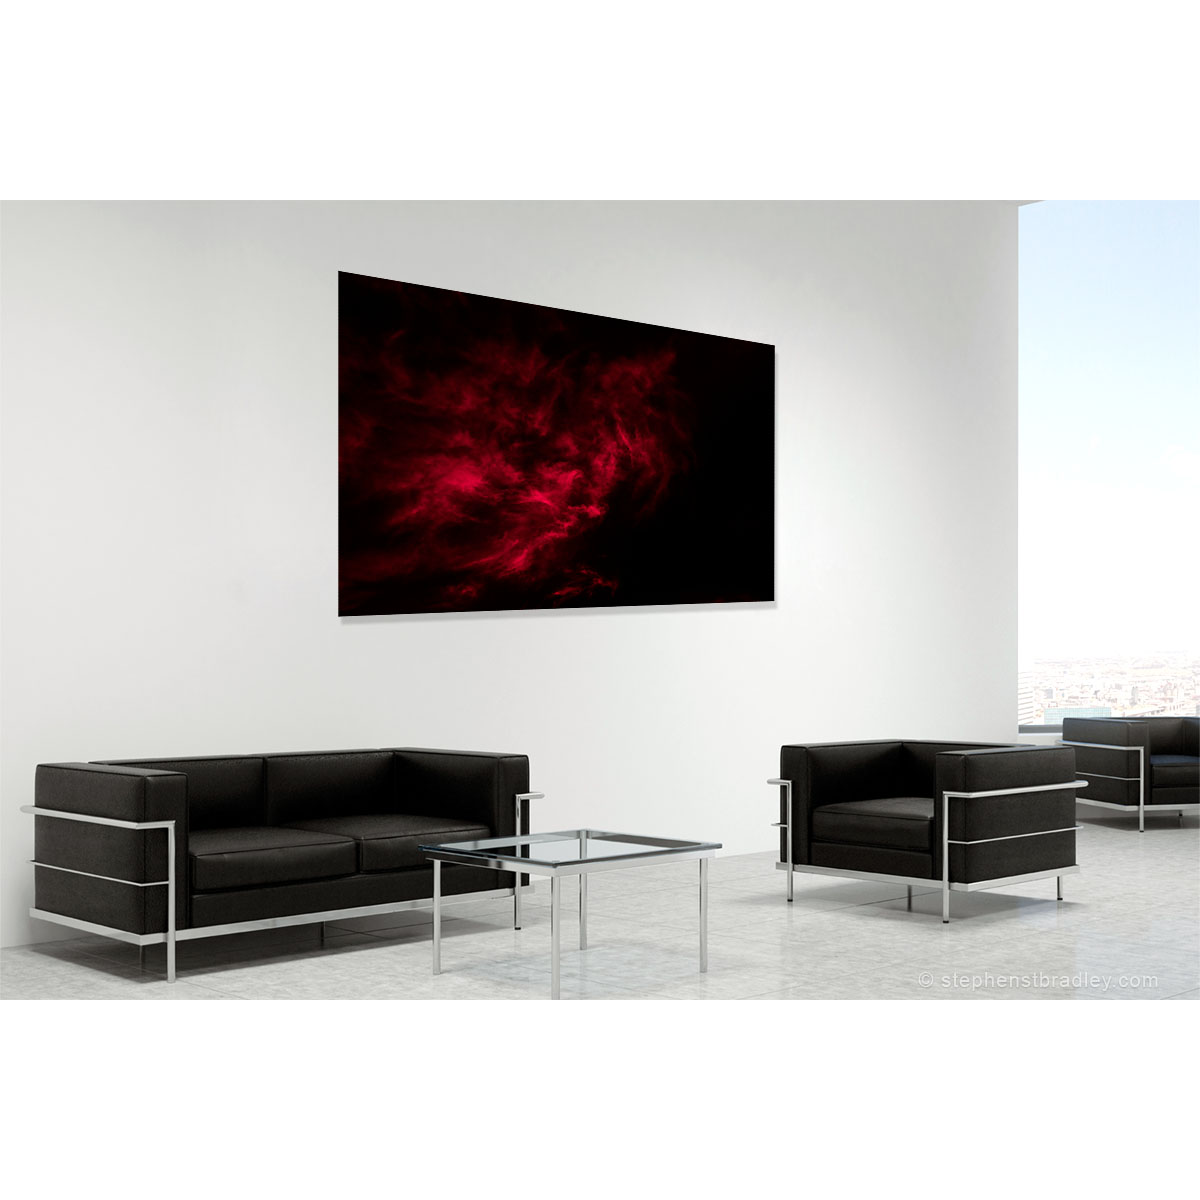 Vapour Red 6760. Limited edition fine art photo of clouds over Ireland by Stephen S T Bradley in room setting